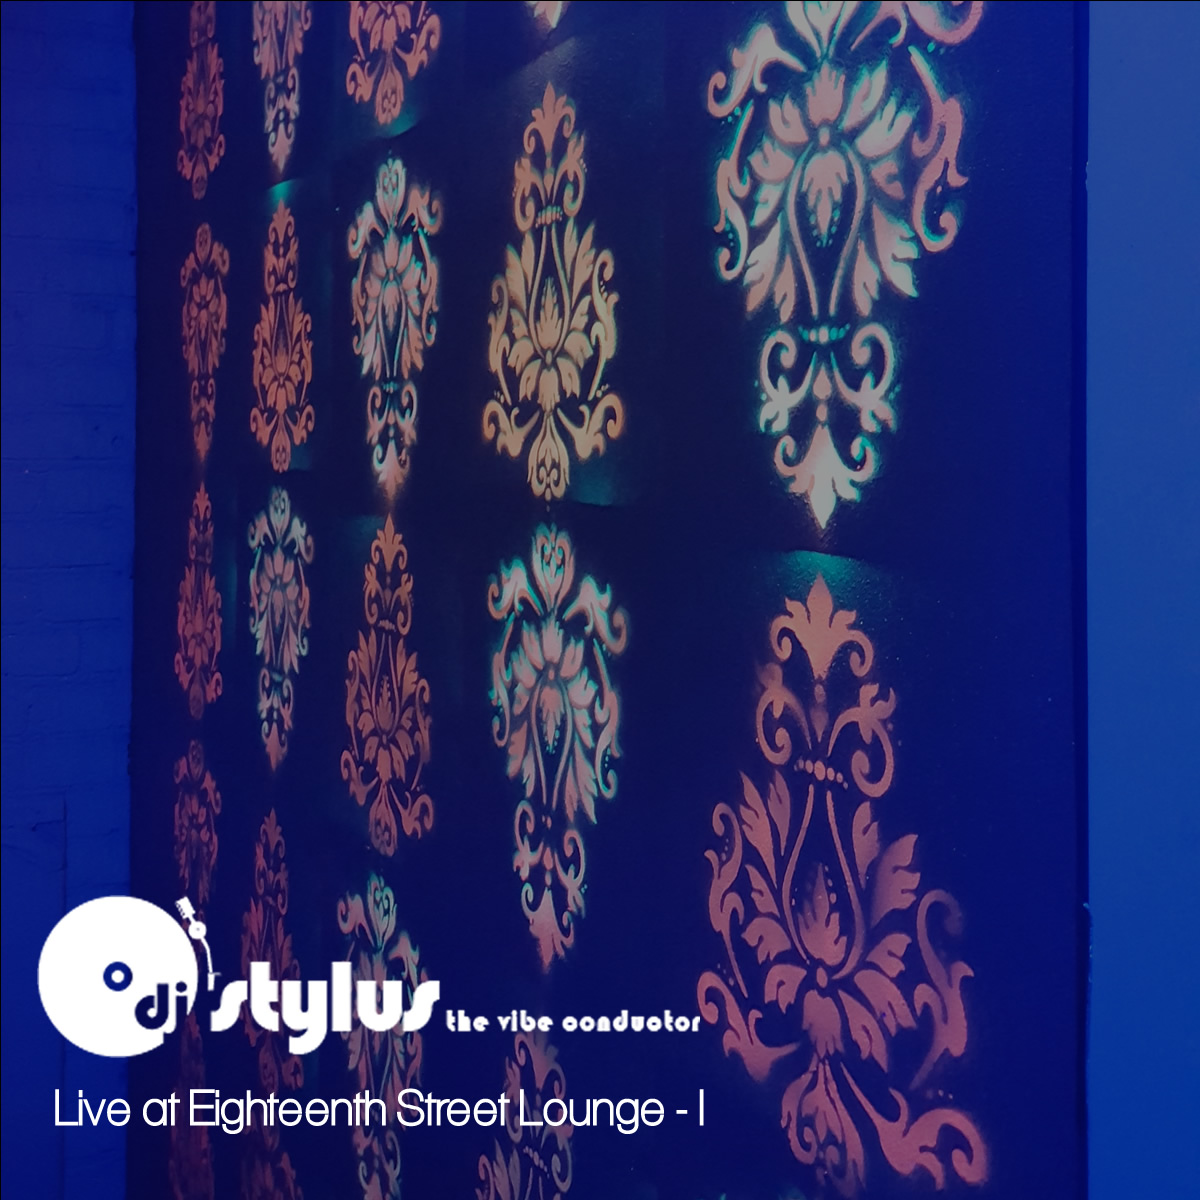 DJ Stylus The Vibe Conductor - Live at Eighteenth Street Lounge, Vol. 1